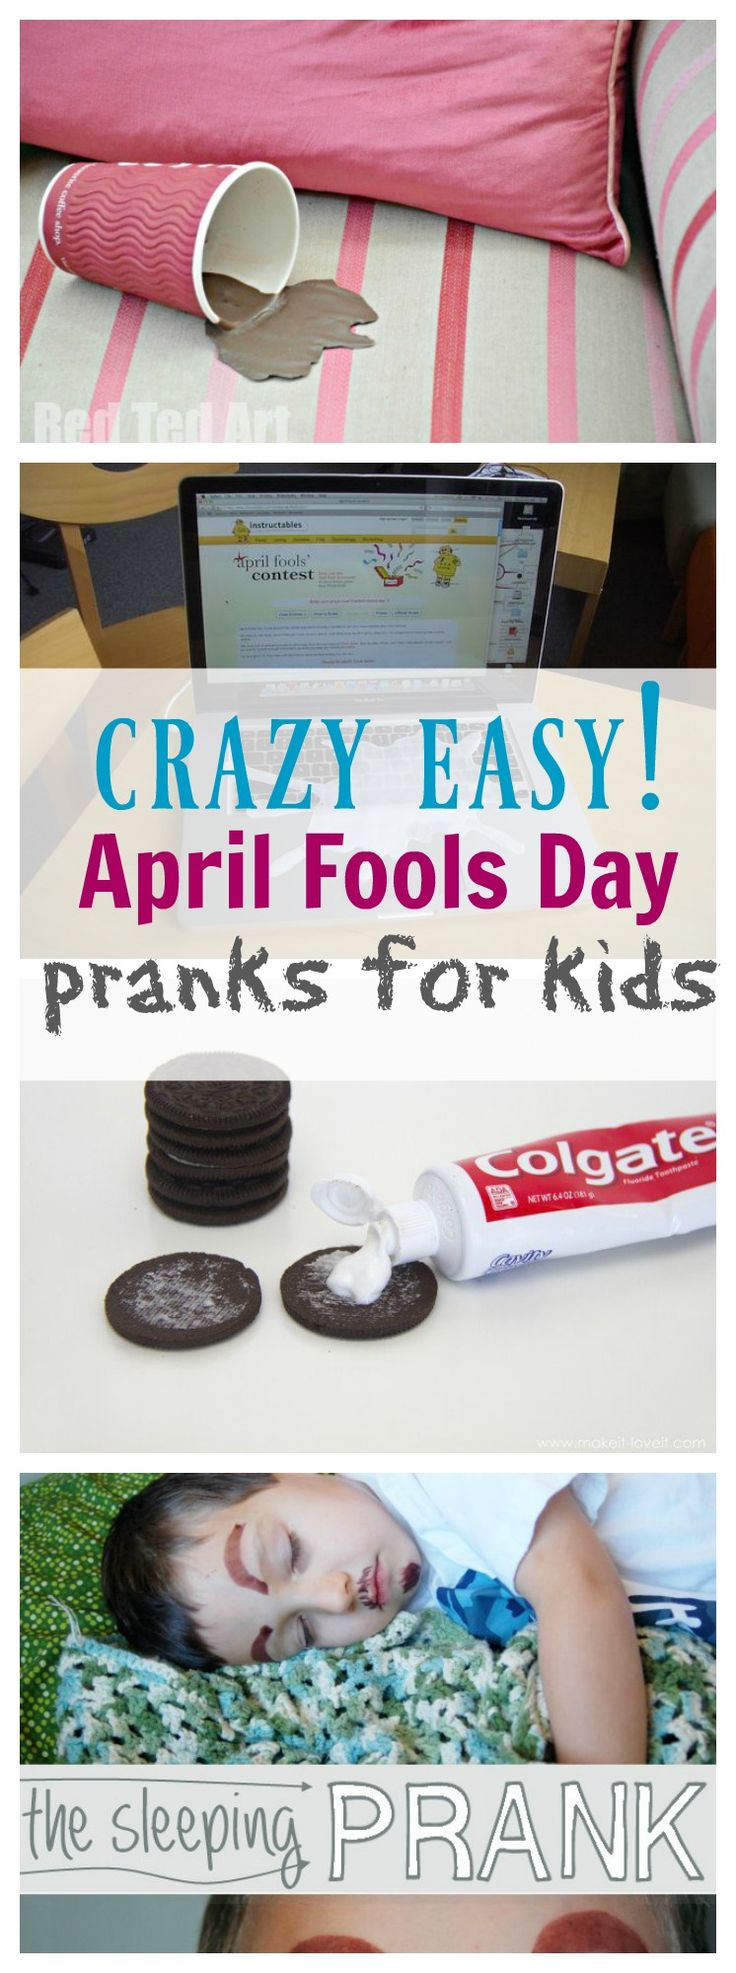 April Fools Day is just around the corner and these April Fools Day Pranks for Kids are going to have your house in stitches laughing! They're all very family friendly jokes that aren't mean or scary! Perfect for young kids or adults like me that scare easily! April Fools Day Pranks for Kids Click on …